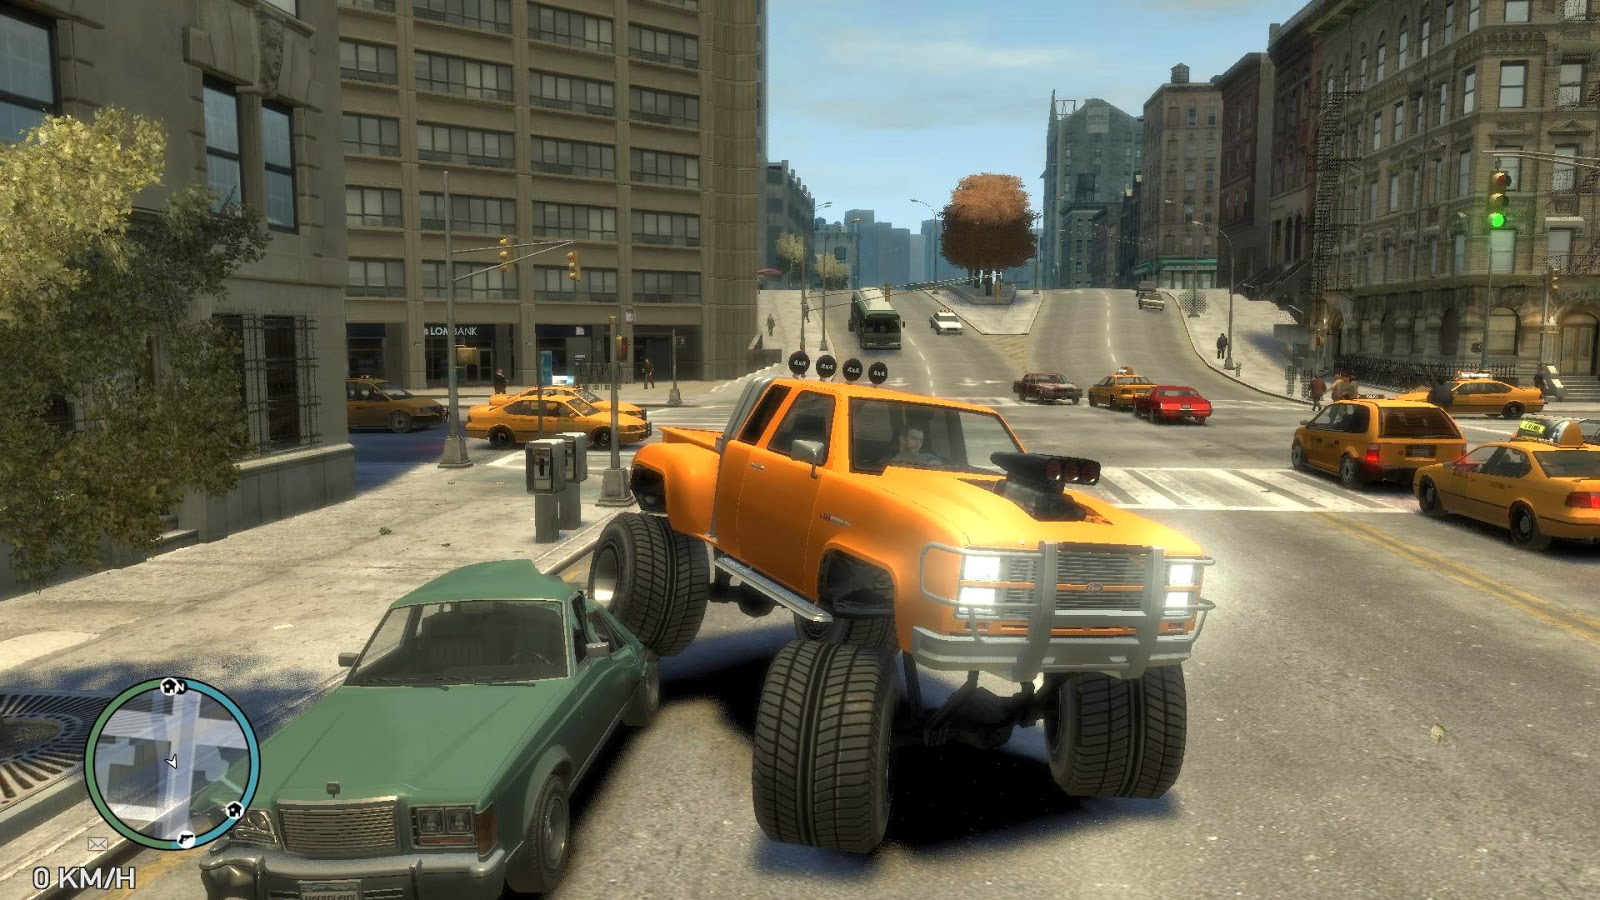 GTA IV Free Download Features